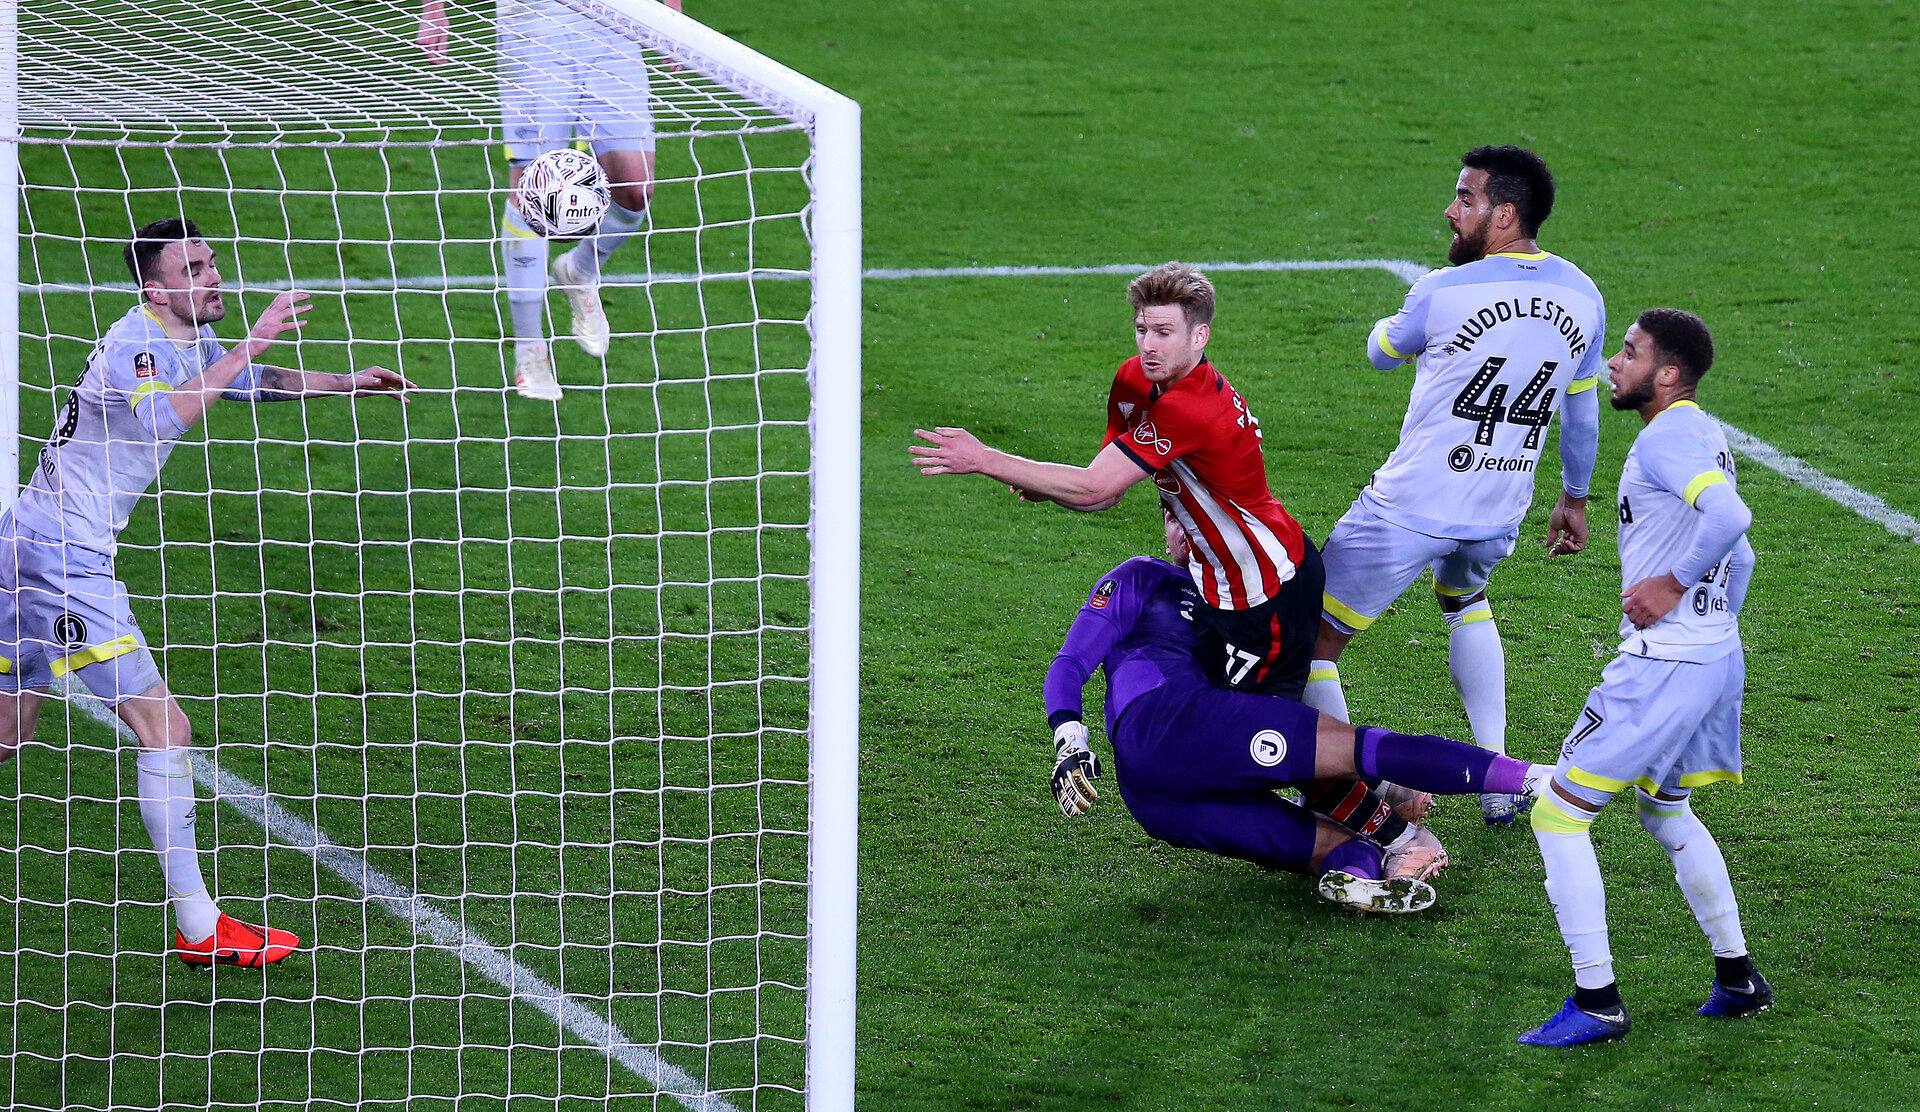 SOUTHAMPTON, ENGLAND - JANUARY 16: Stuart Armstrong of Southampton scores to make it 1-0 during the FA Cup Third Round Replay match between Southampton FC and Derby County at St Mary's Stadium on January 16, 2019 in Southampton, United Kingdom. (Photo by Matt Watson/Southampton FC via Getty Images)